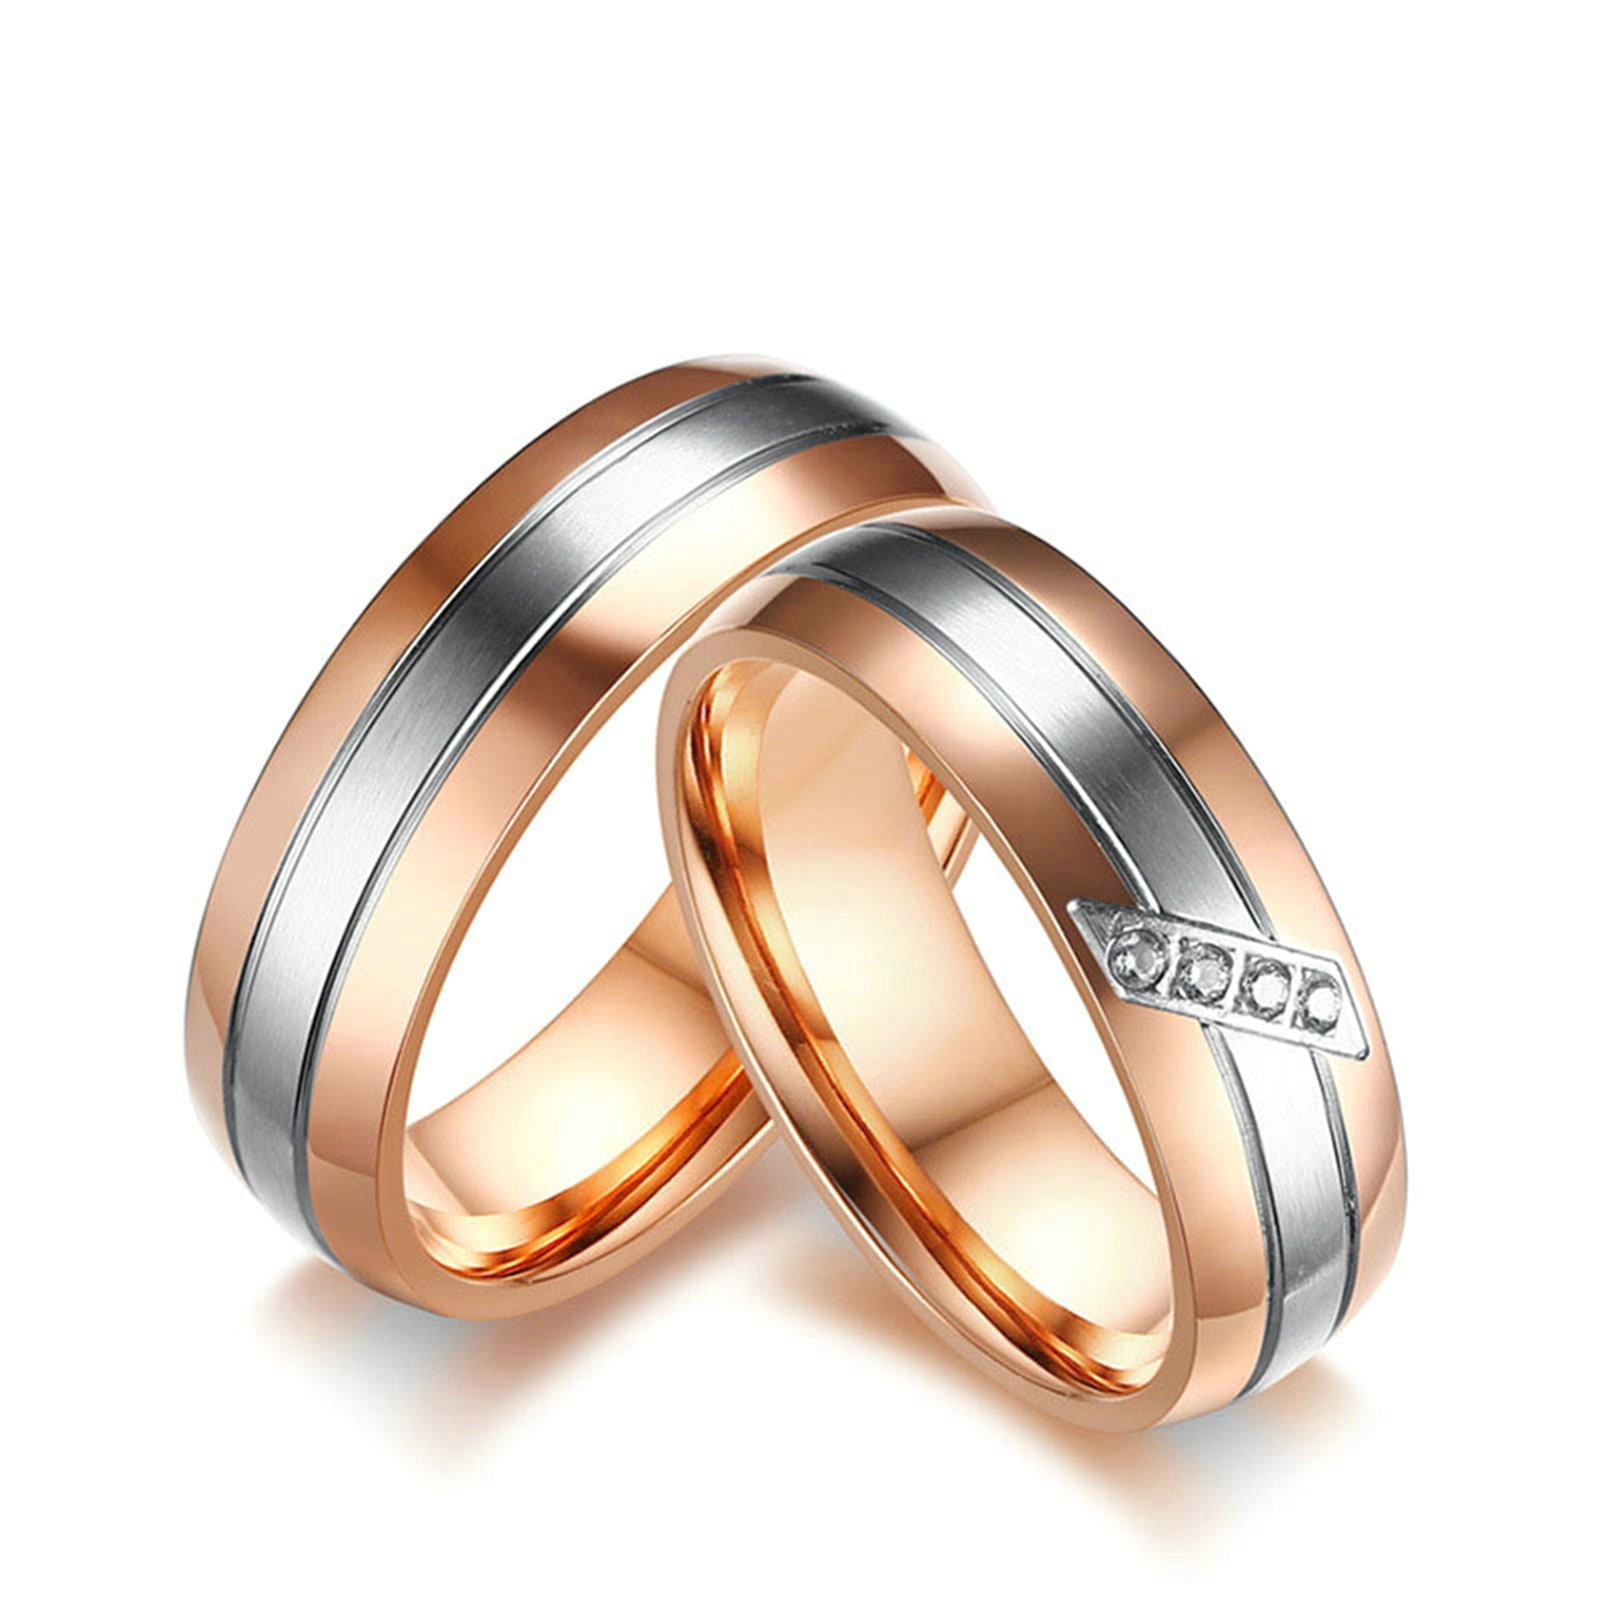 Beydodo 1 Pair His and Hers Ring, Stainless Steel Two-tone 6MM Wedding Ring CZ Women Size 6 Men Size 9